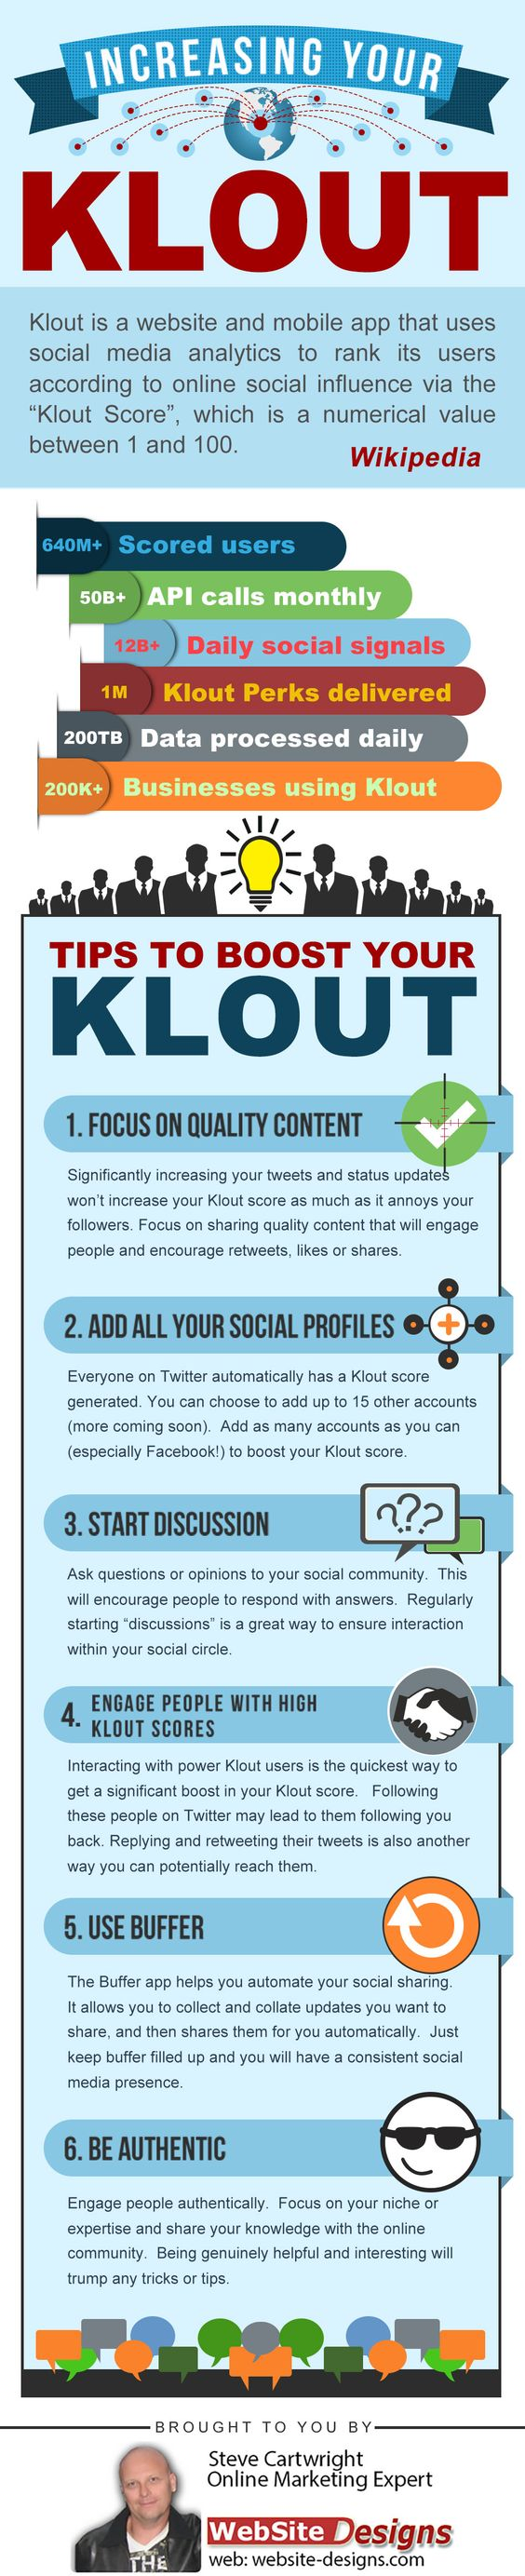 Increase Your Klout Score #infographic